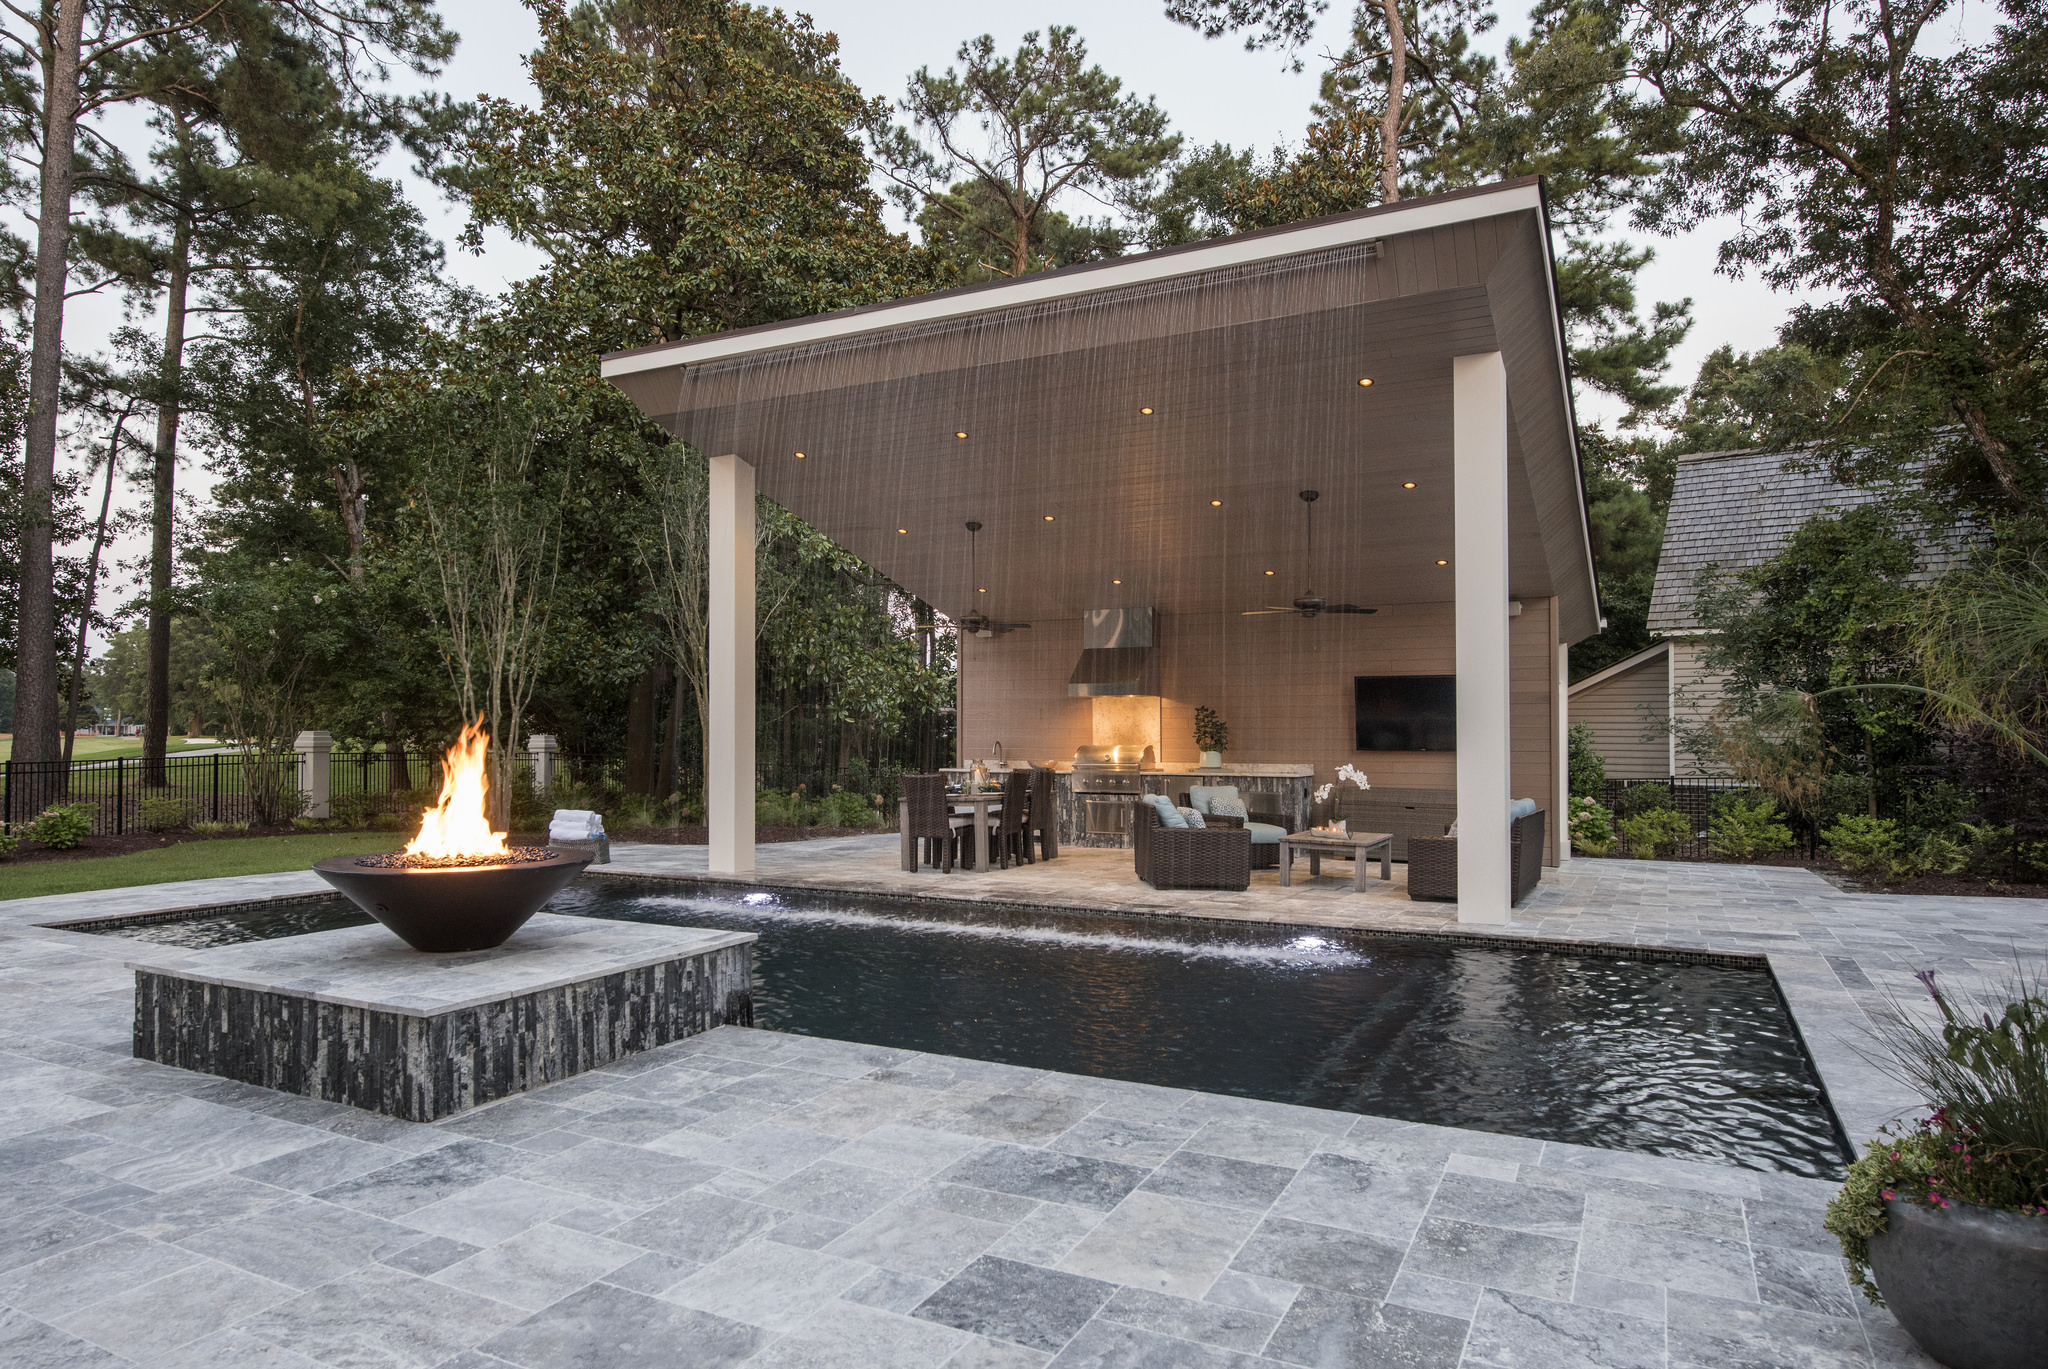 outdoor kitchen and living room featuring fire bowl on stone patio and waterfall feature